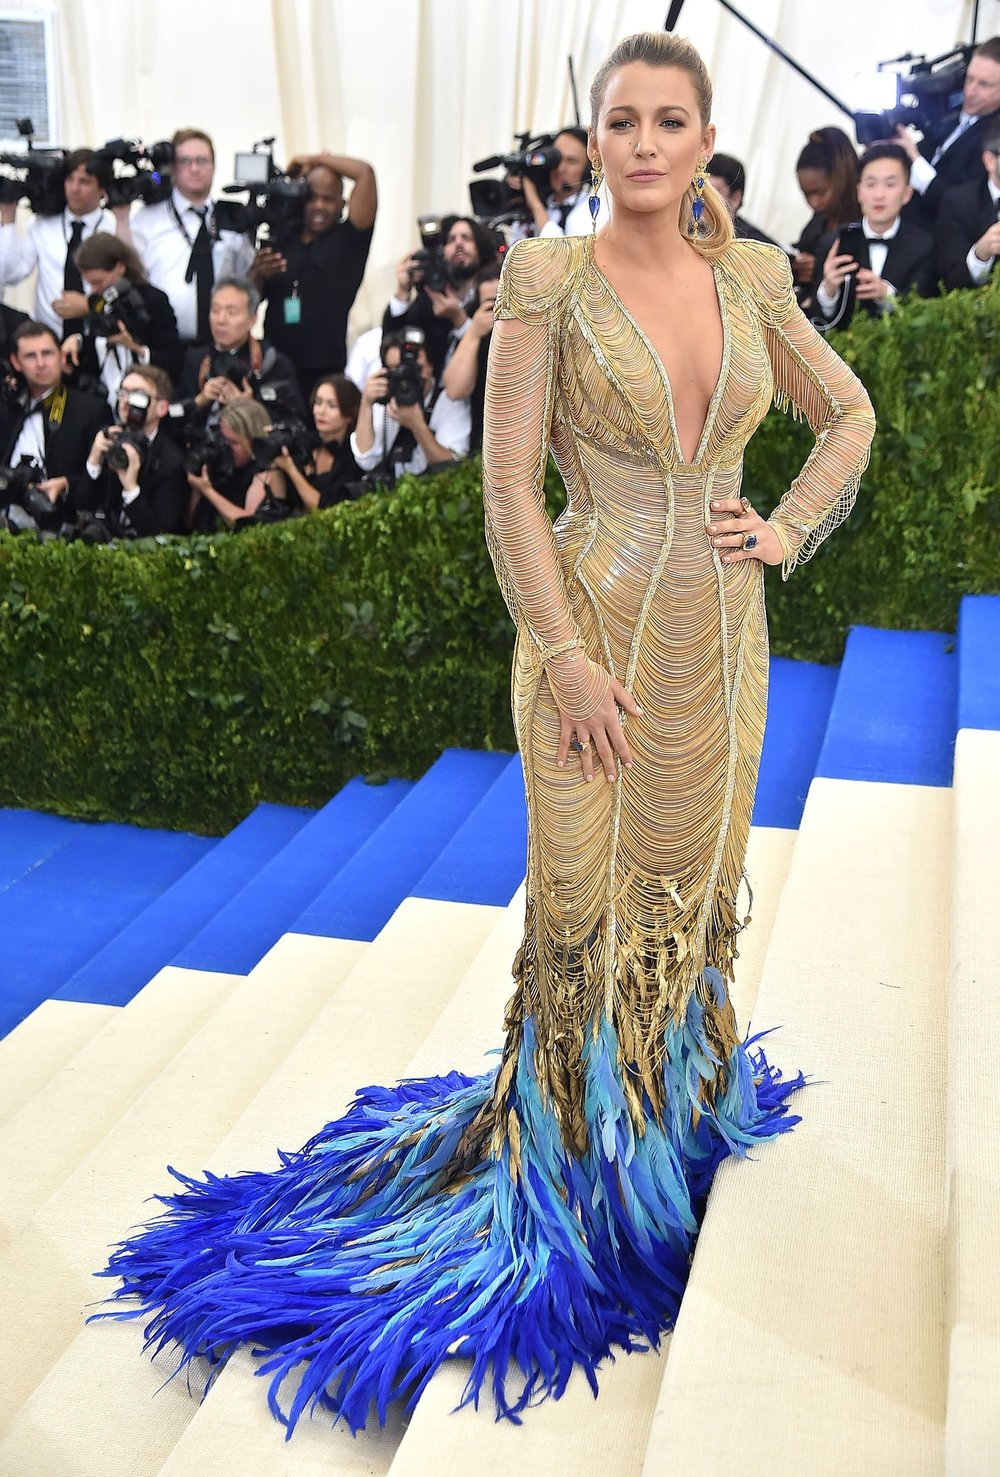 "Blake Lively ""Reynolds""   in Atelier Versace.  She absolutely KILLED IT in this look and solidified her MILF status if we forgot the fact she's a momma of 2. The fact that her feathers match the carpet to a T was definitely planned. She's never used a stylist which makes me love her even more. She always takes fashion risks and like this one, it paid off big time!"